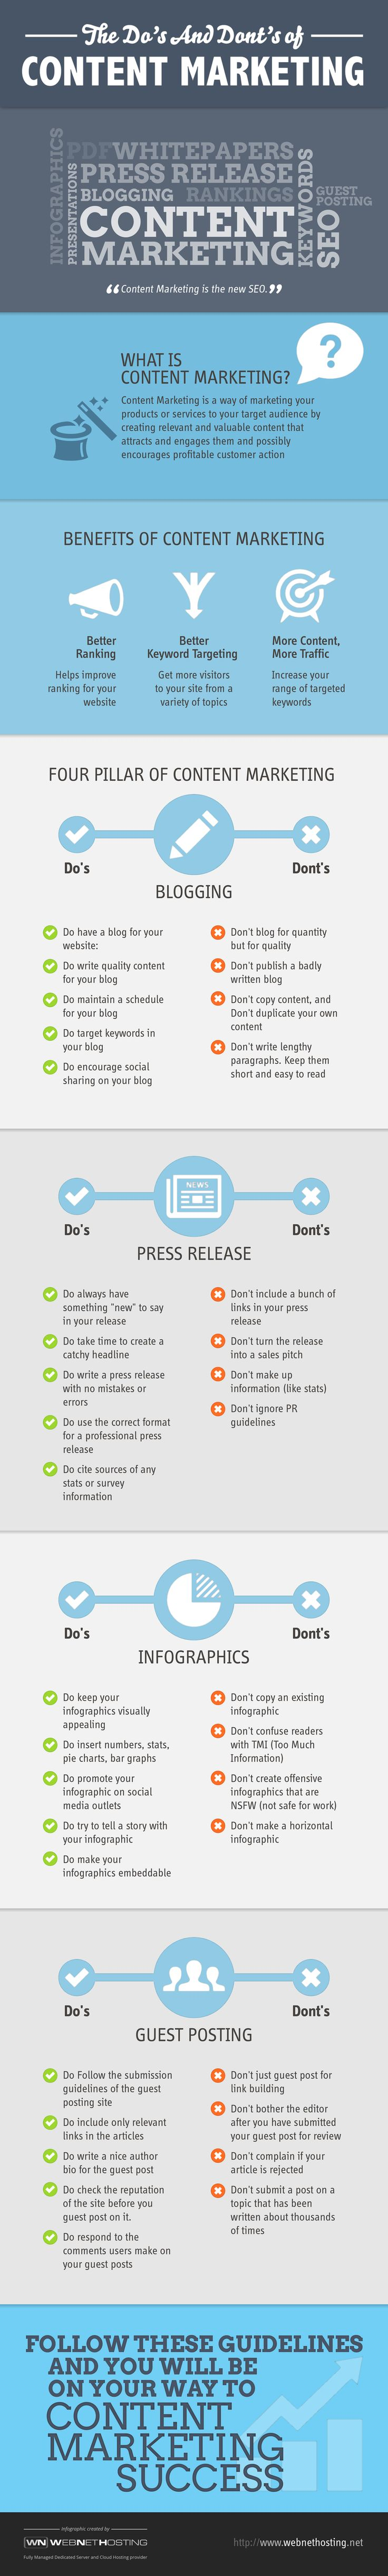 The do's and don'ts of content marketing  #contentmarketing #marketing #infographic